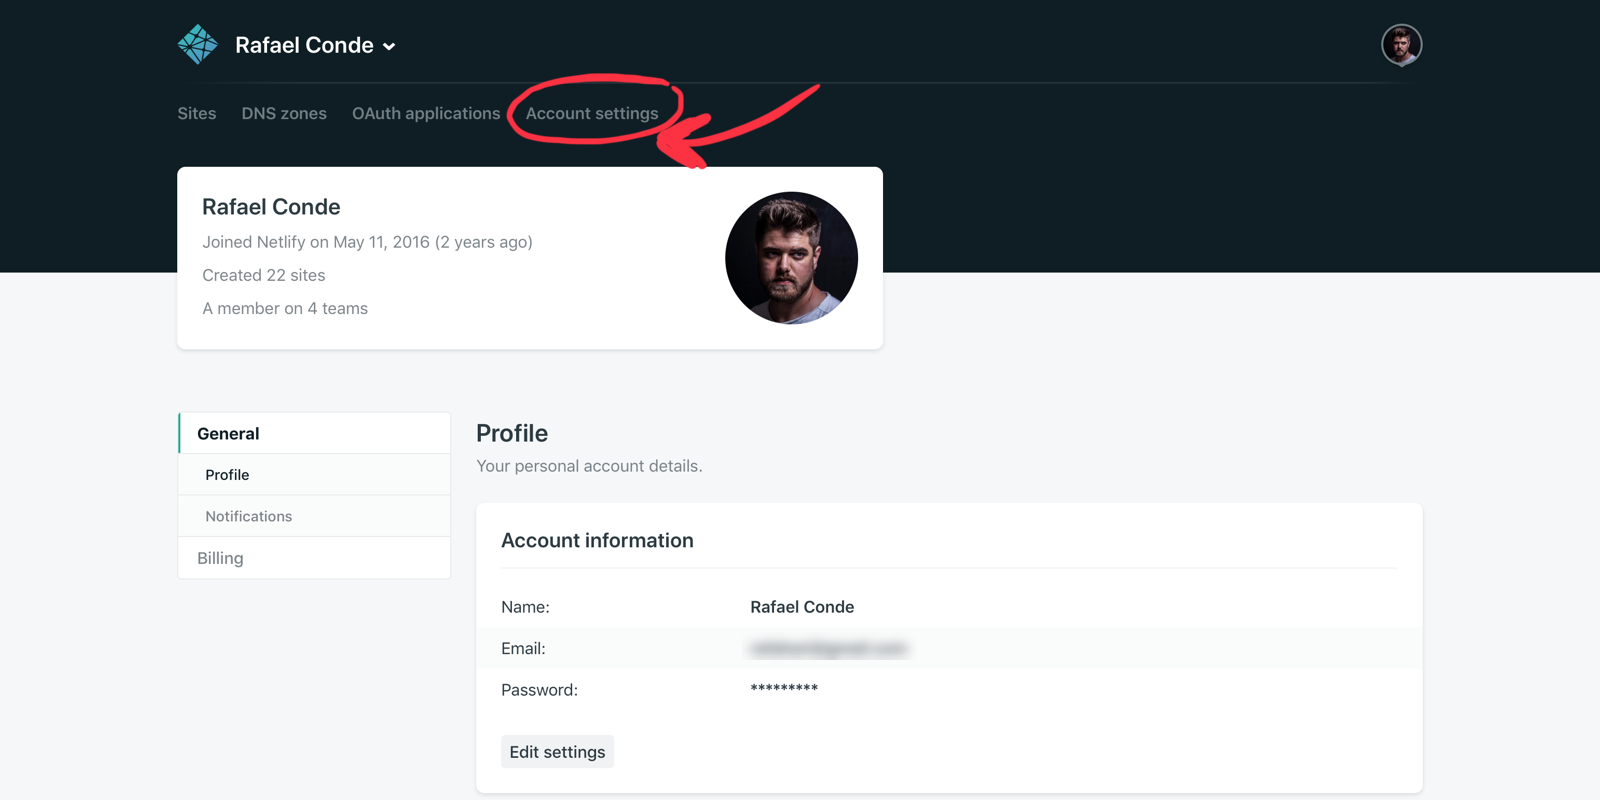 'Account settings' tab under the personal account selection